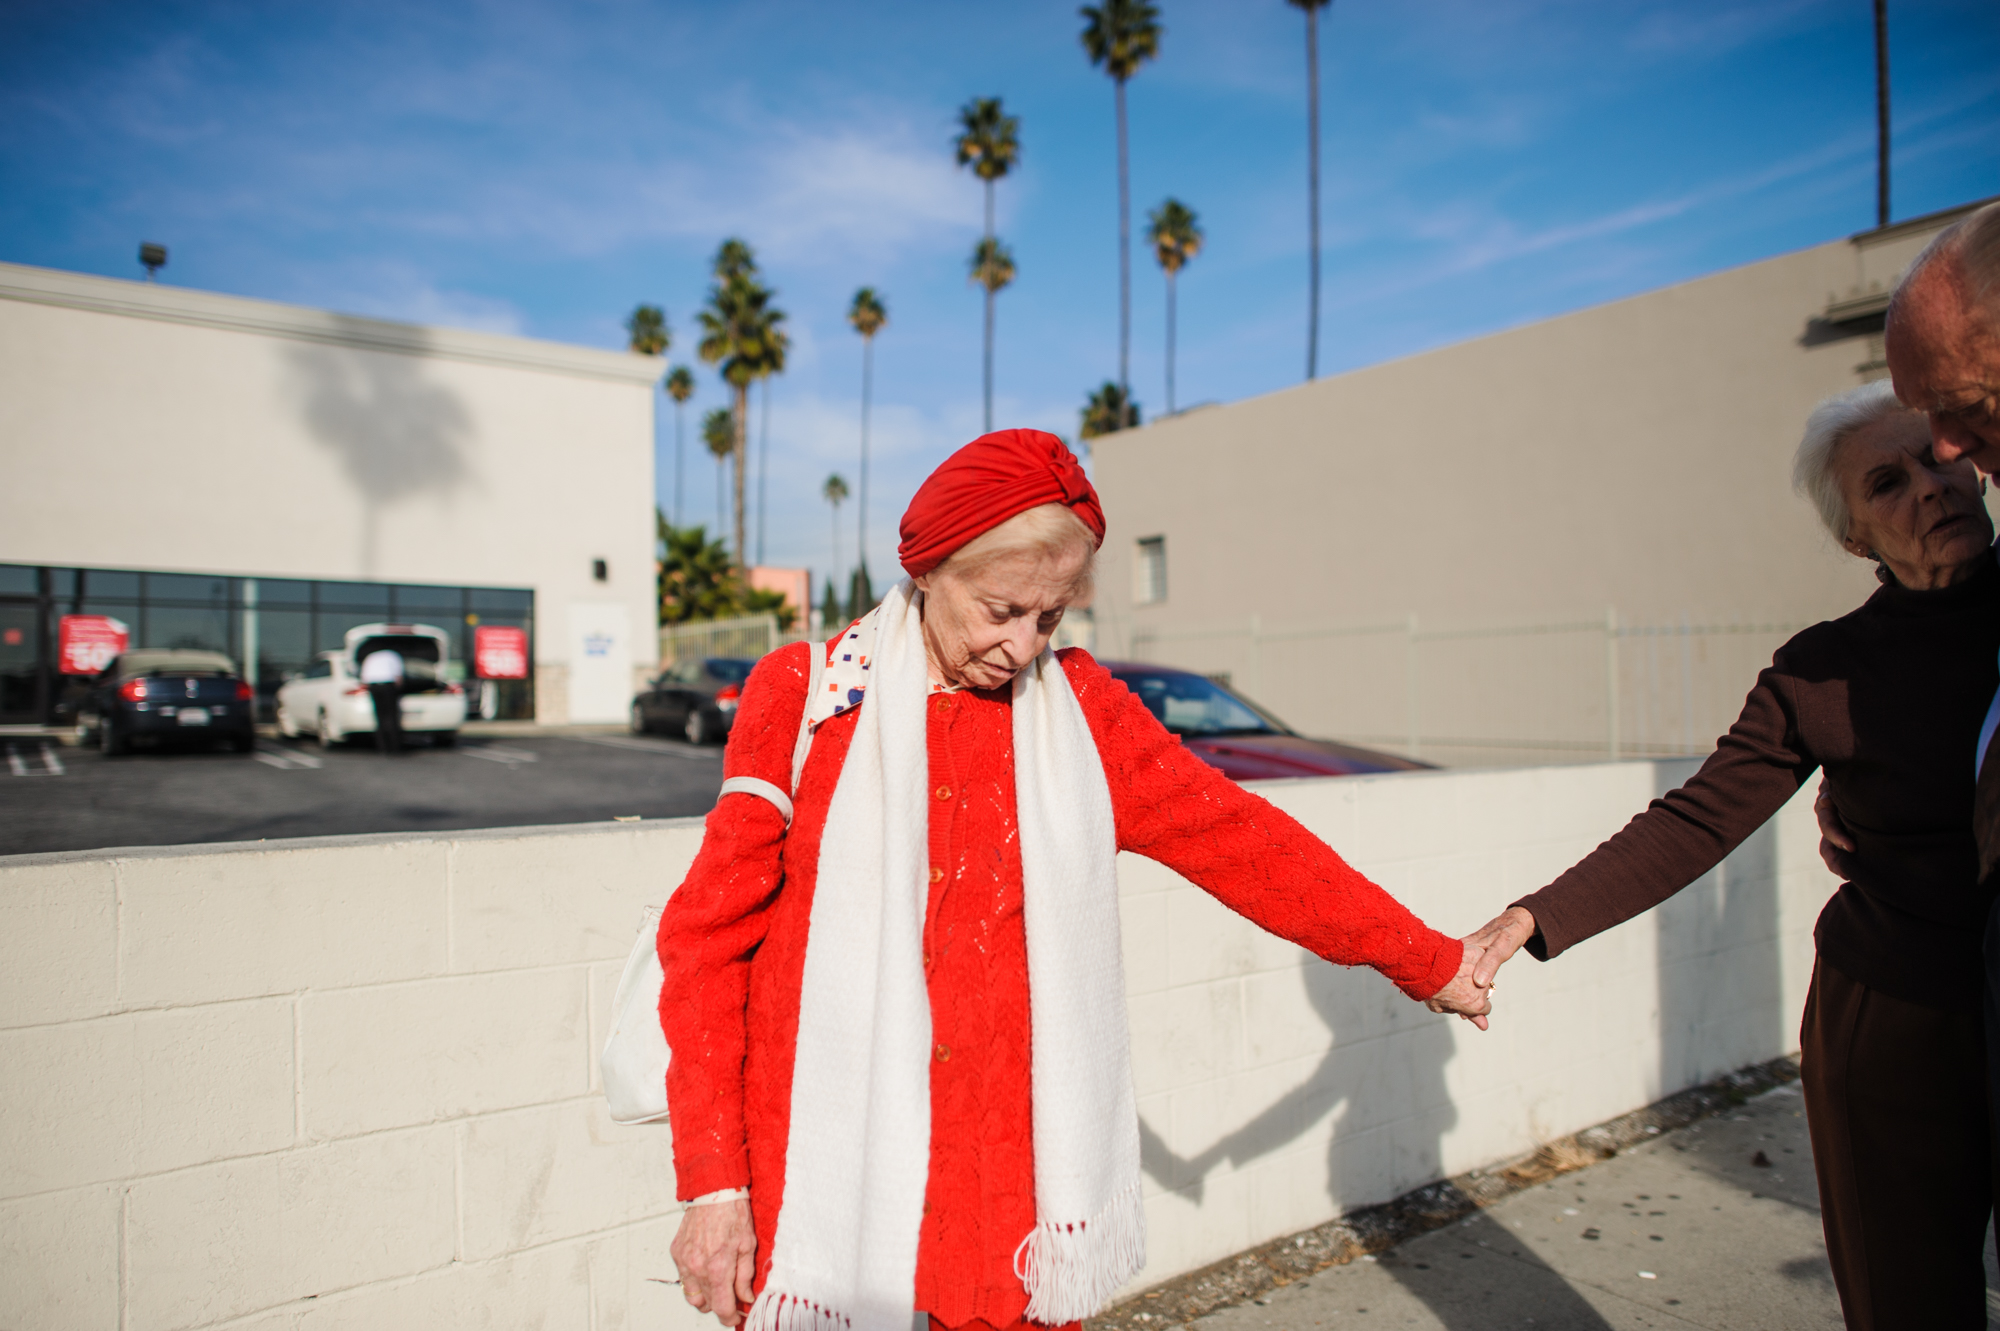 Adina stands on the sidewalk in Los Angeles, as Jeanie holds Adina's hand while having a conversation with Will.